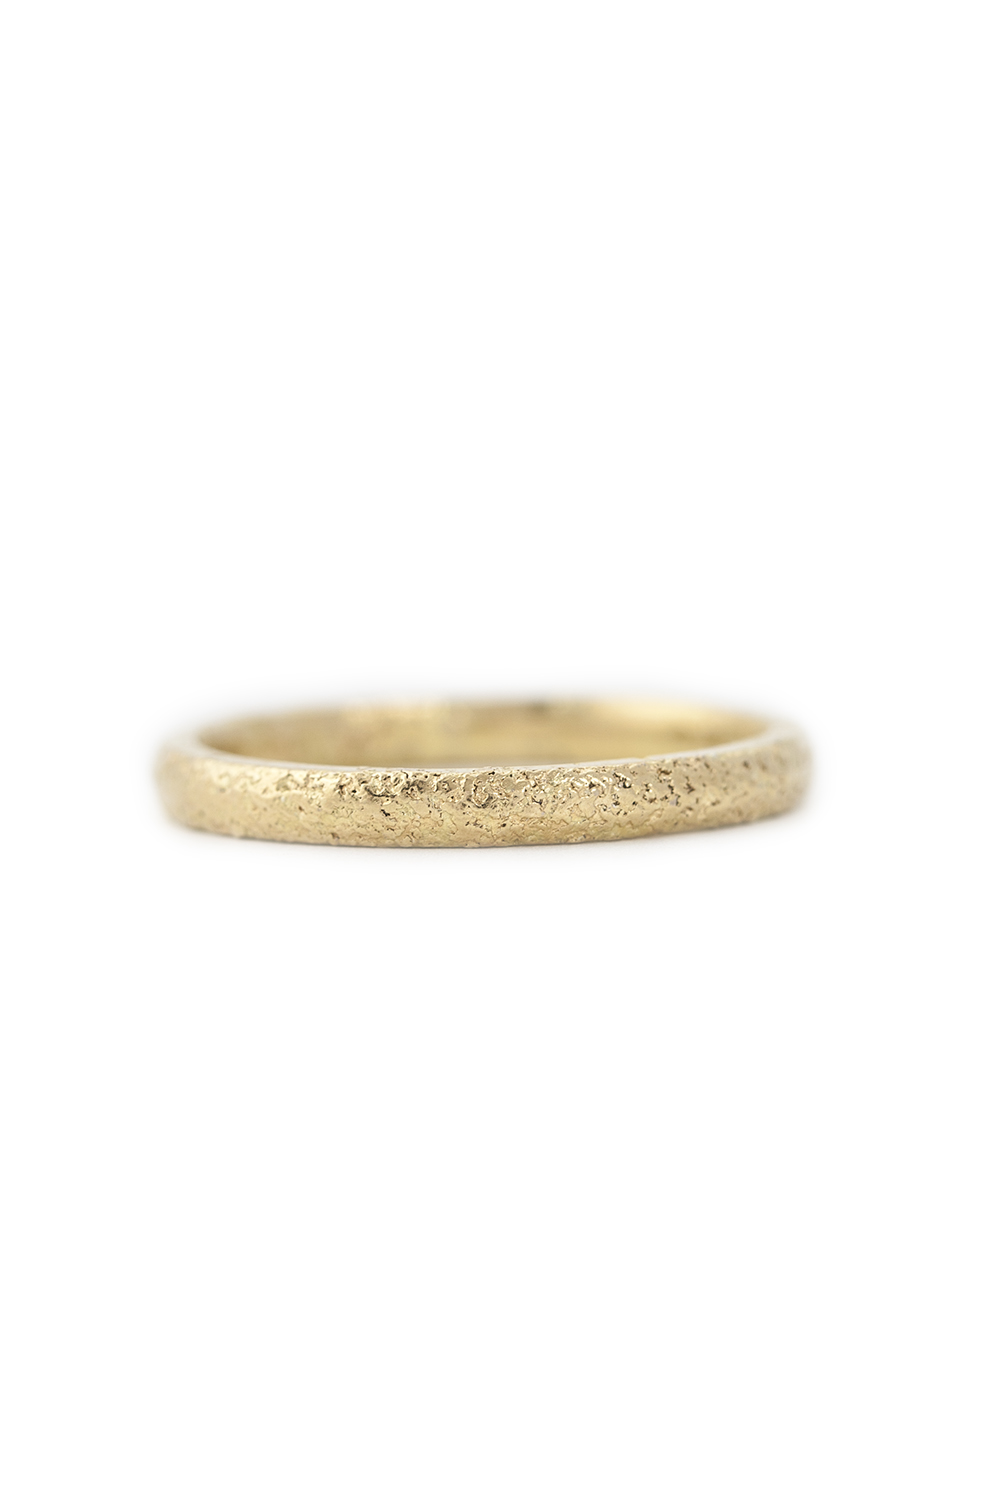 Gold dust fused ring in yellow gold